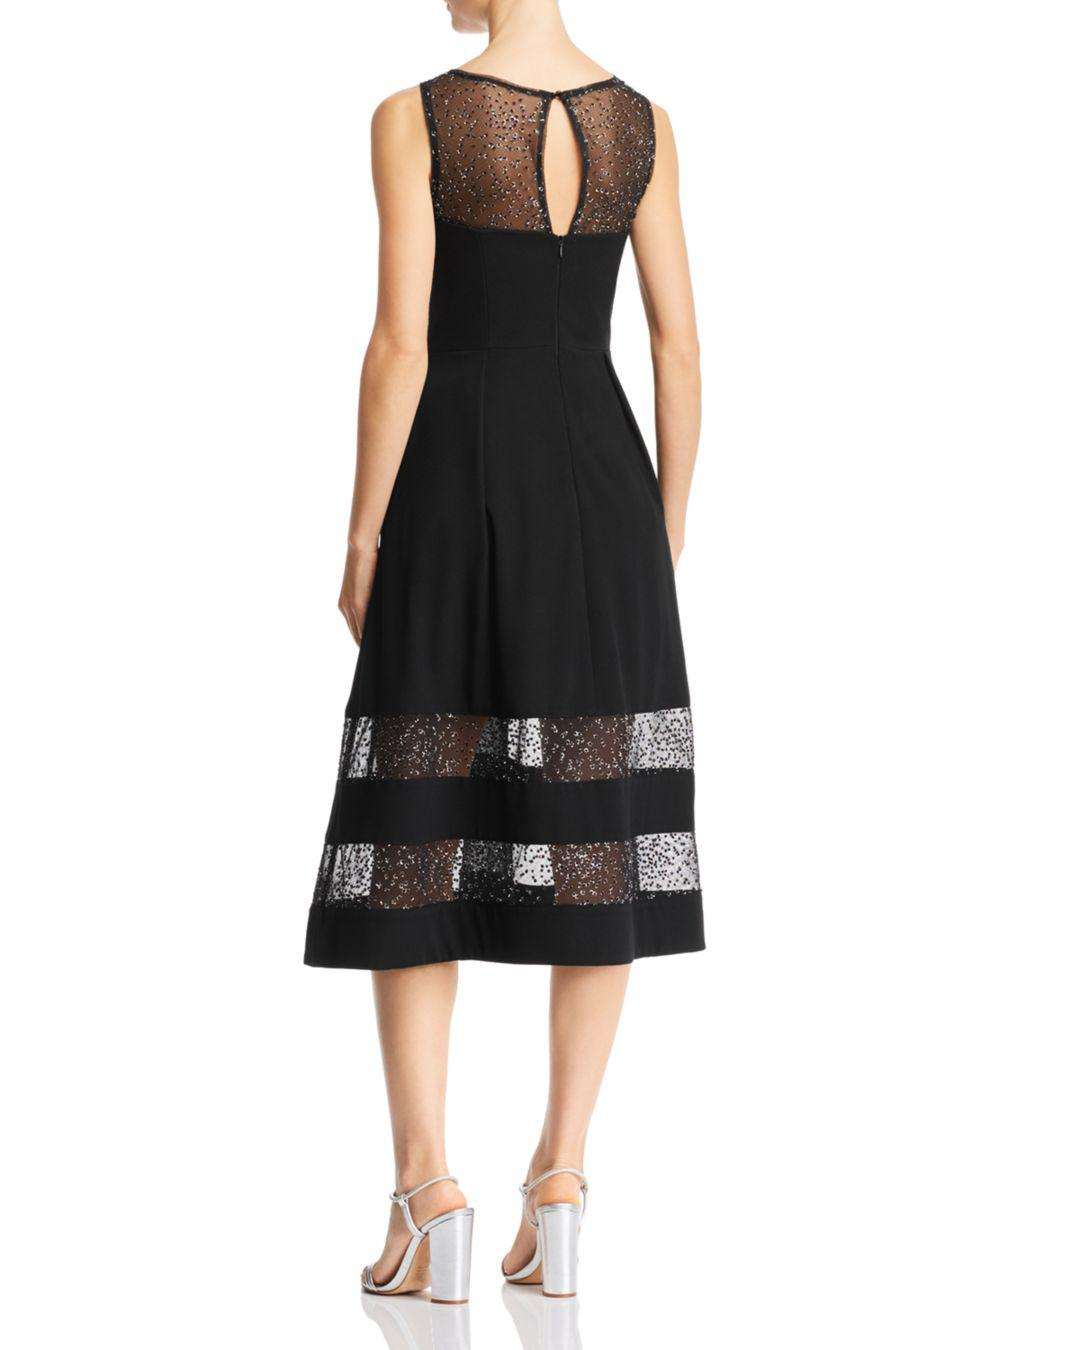 f76529bf99c Lyst - Aidan By Aidan Mattox Embroidered Crepe Dress in Black - Save 20.0%